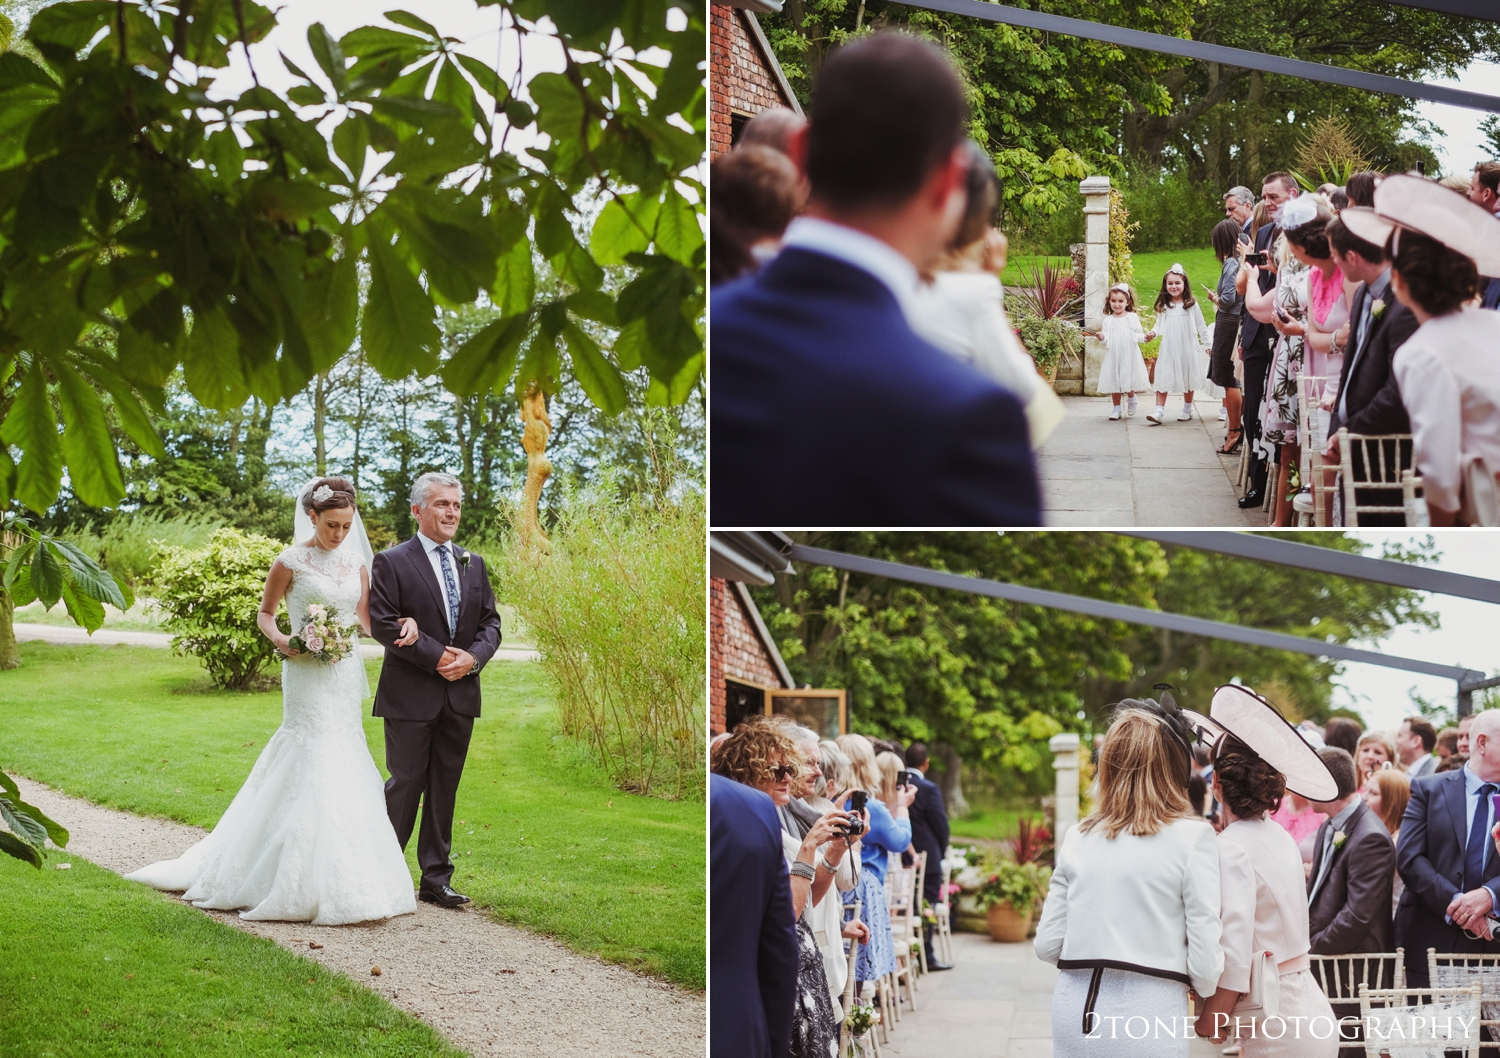 Danielle looked stunning as she walked to her ceremony.  Both Danielle and Alex's Mums stood up and held hands while they watched Danielle escorted down the aisle on the arm of her dad, a moment we are proud to have captured for Danielle and Alex.